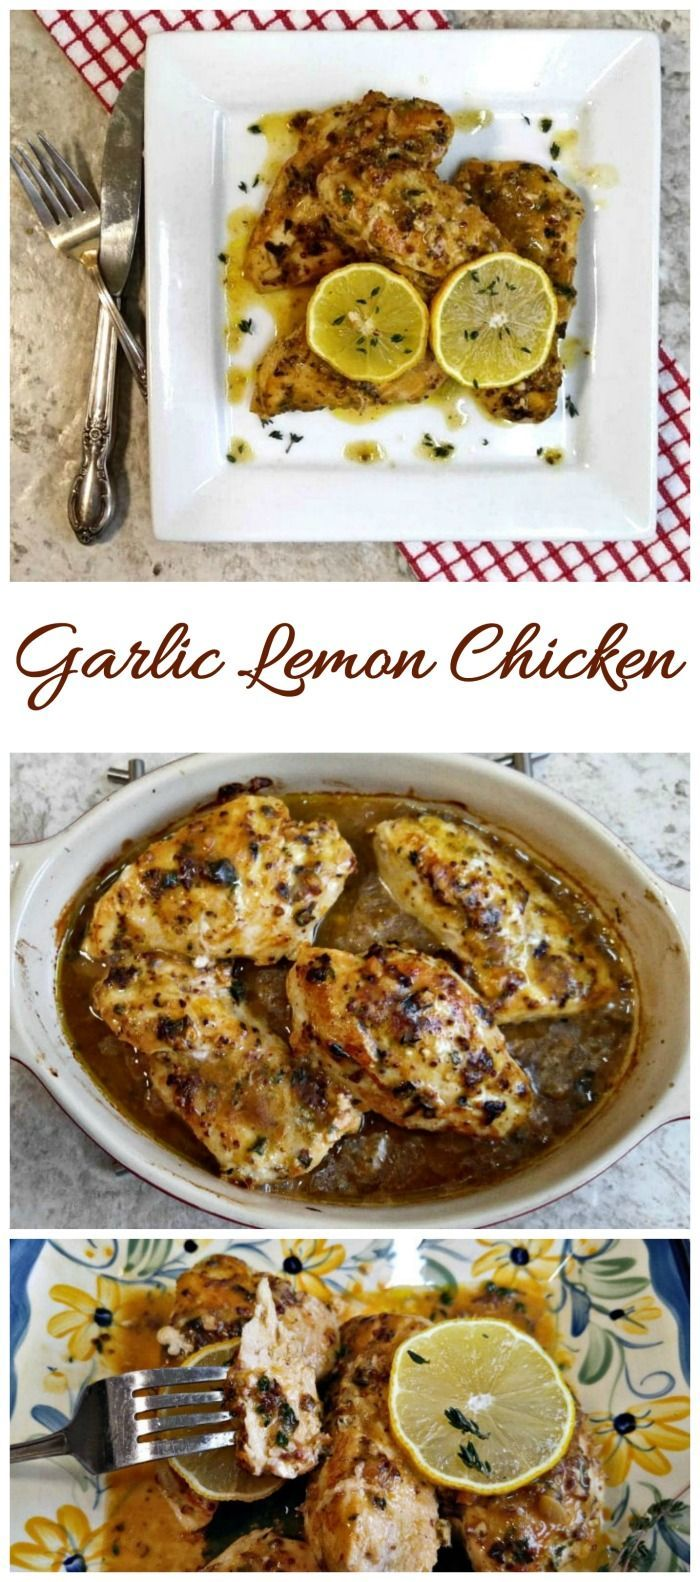 This garlic lemon chicken has an amazing sauce that is tart and savory. It's ready in about 30 minutes and is easy to prepare.#garliclemonchicken #30minutemeals